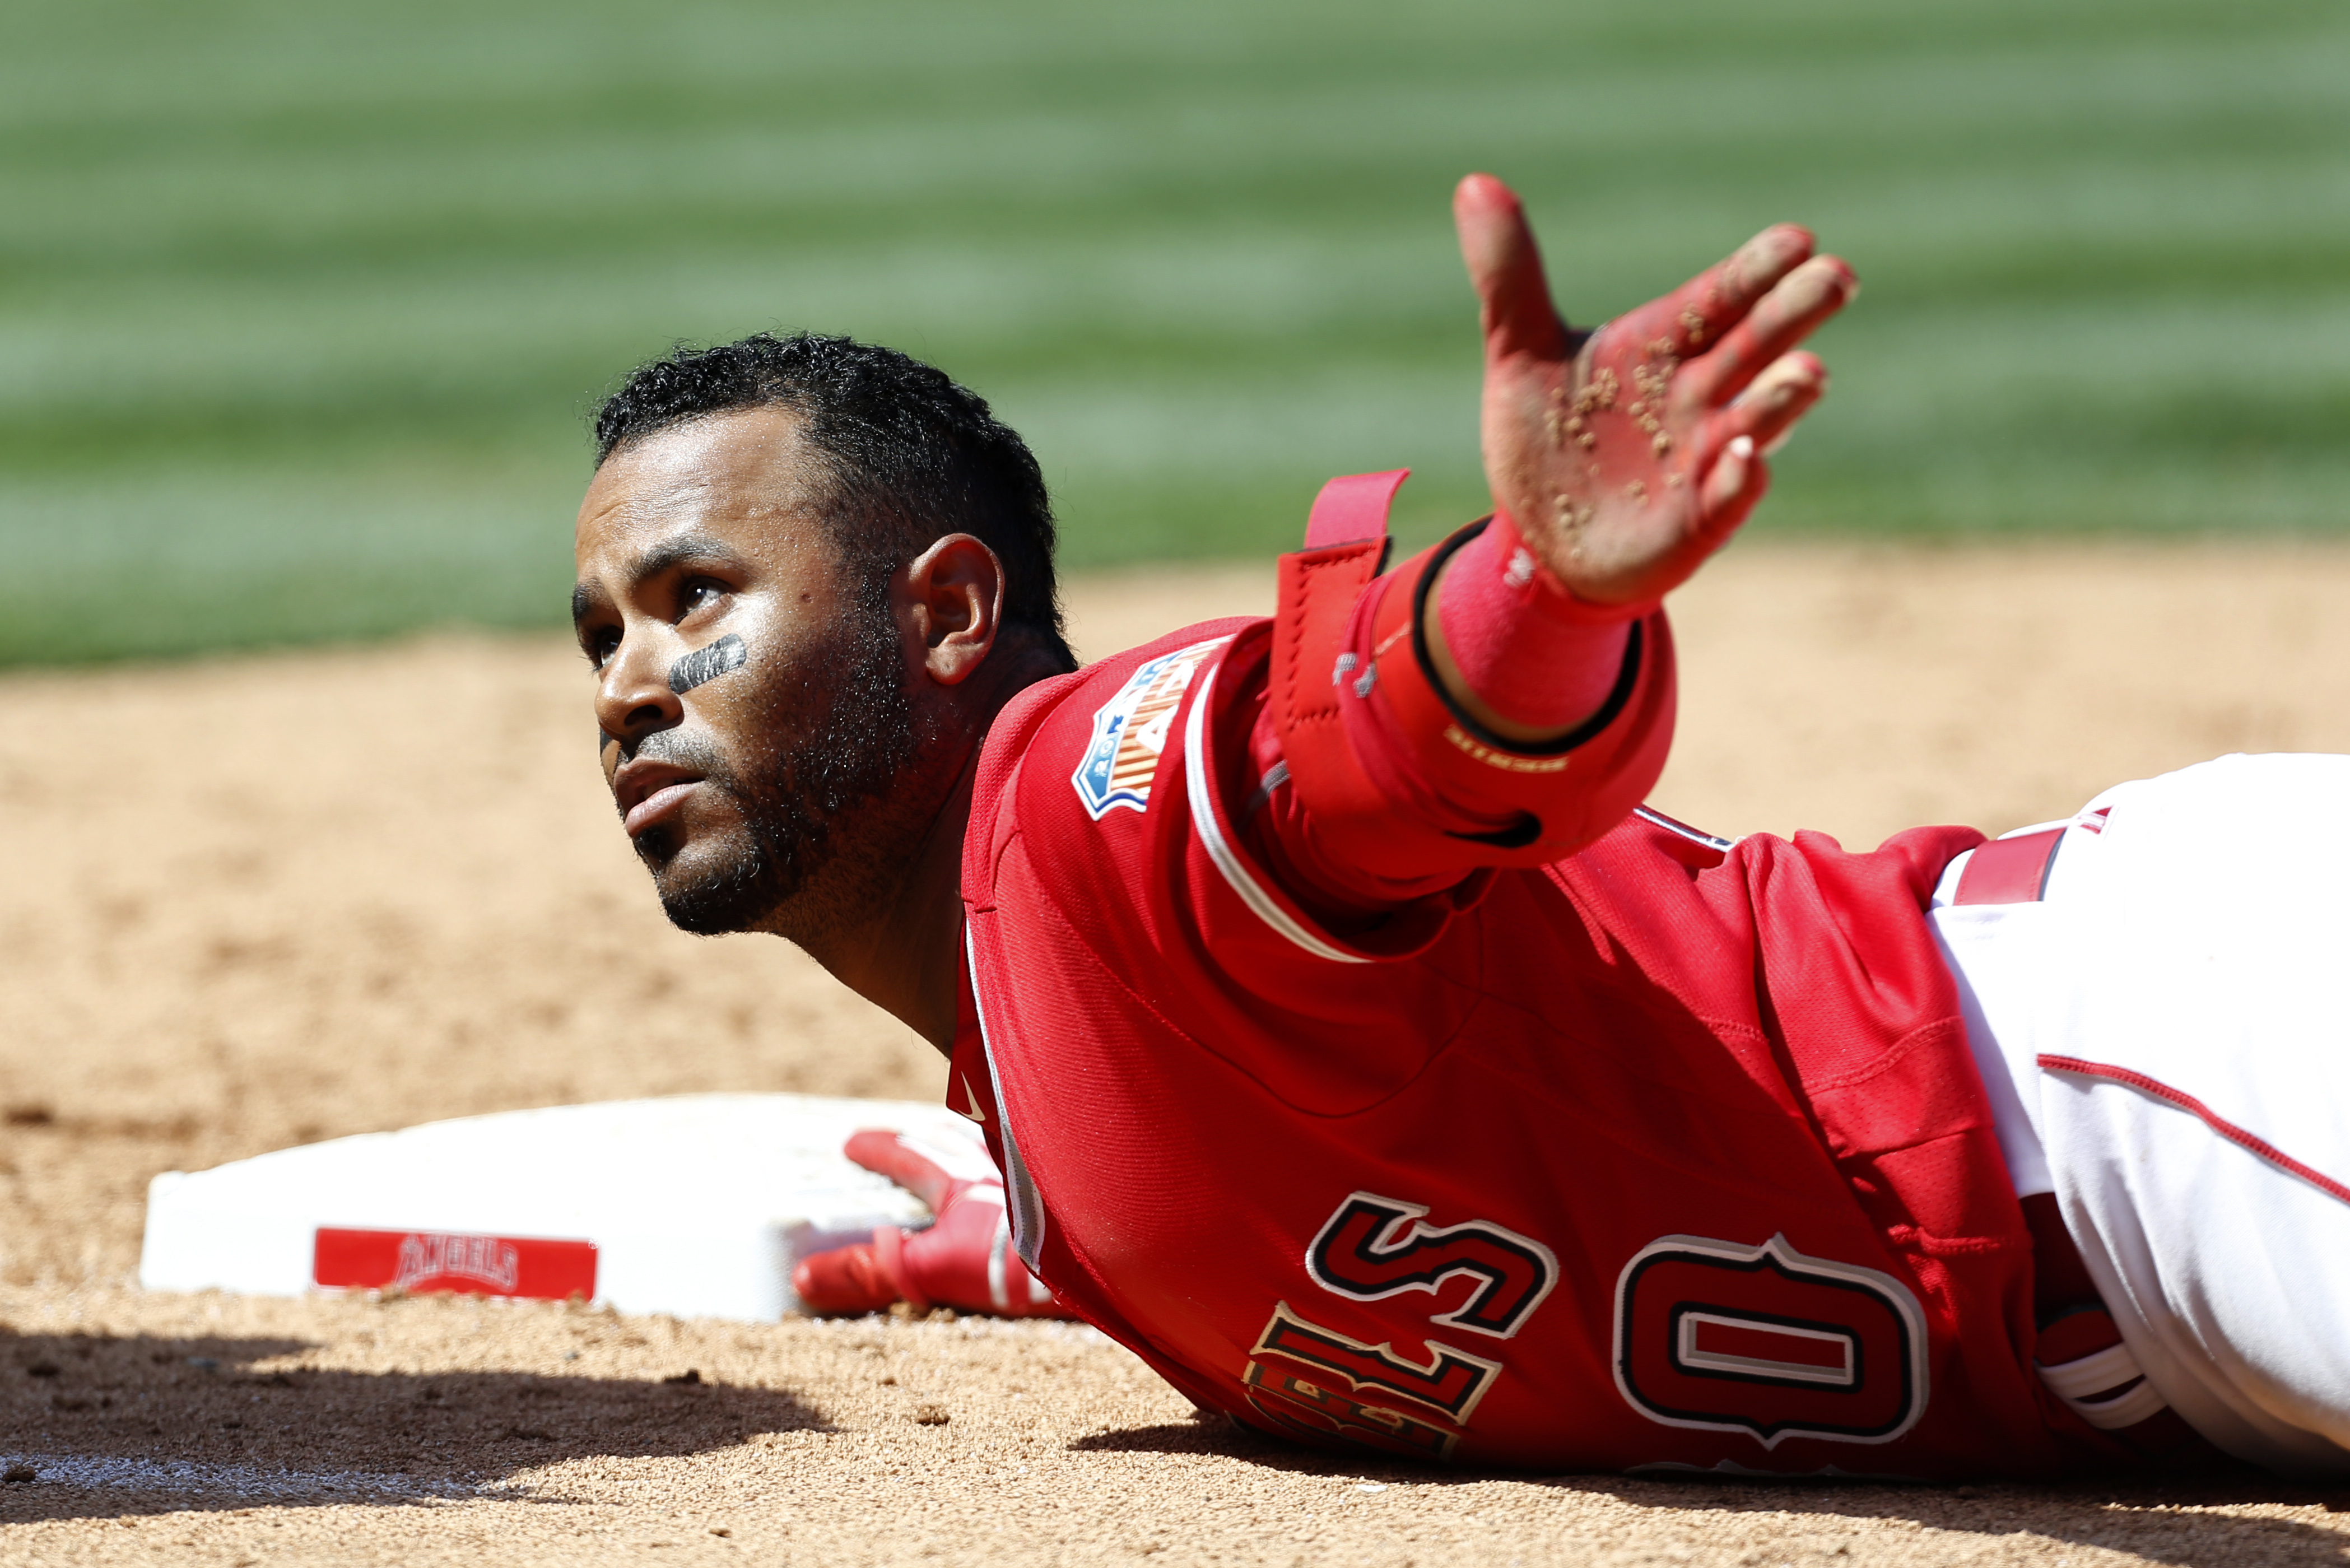 Los Angeles Angels' Gregorio Petit dives back to first base after hitting an RBI-single in the eighth inning against the Chicago Cubs in a spring exhibition baseball game in Anaheim, Calif., Sunday, April 3, 2016. (AP Photo/Christine Cotter)